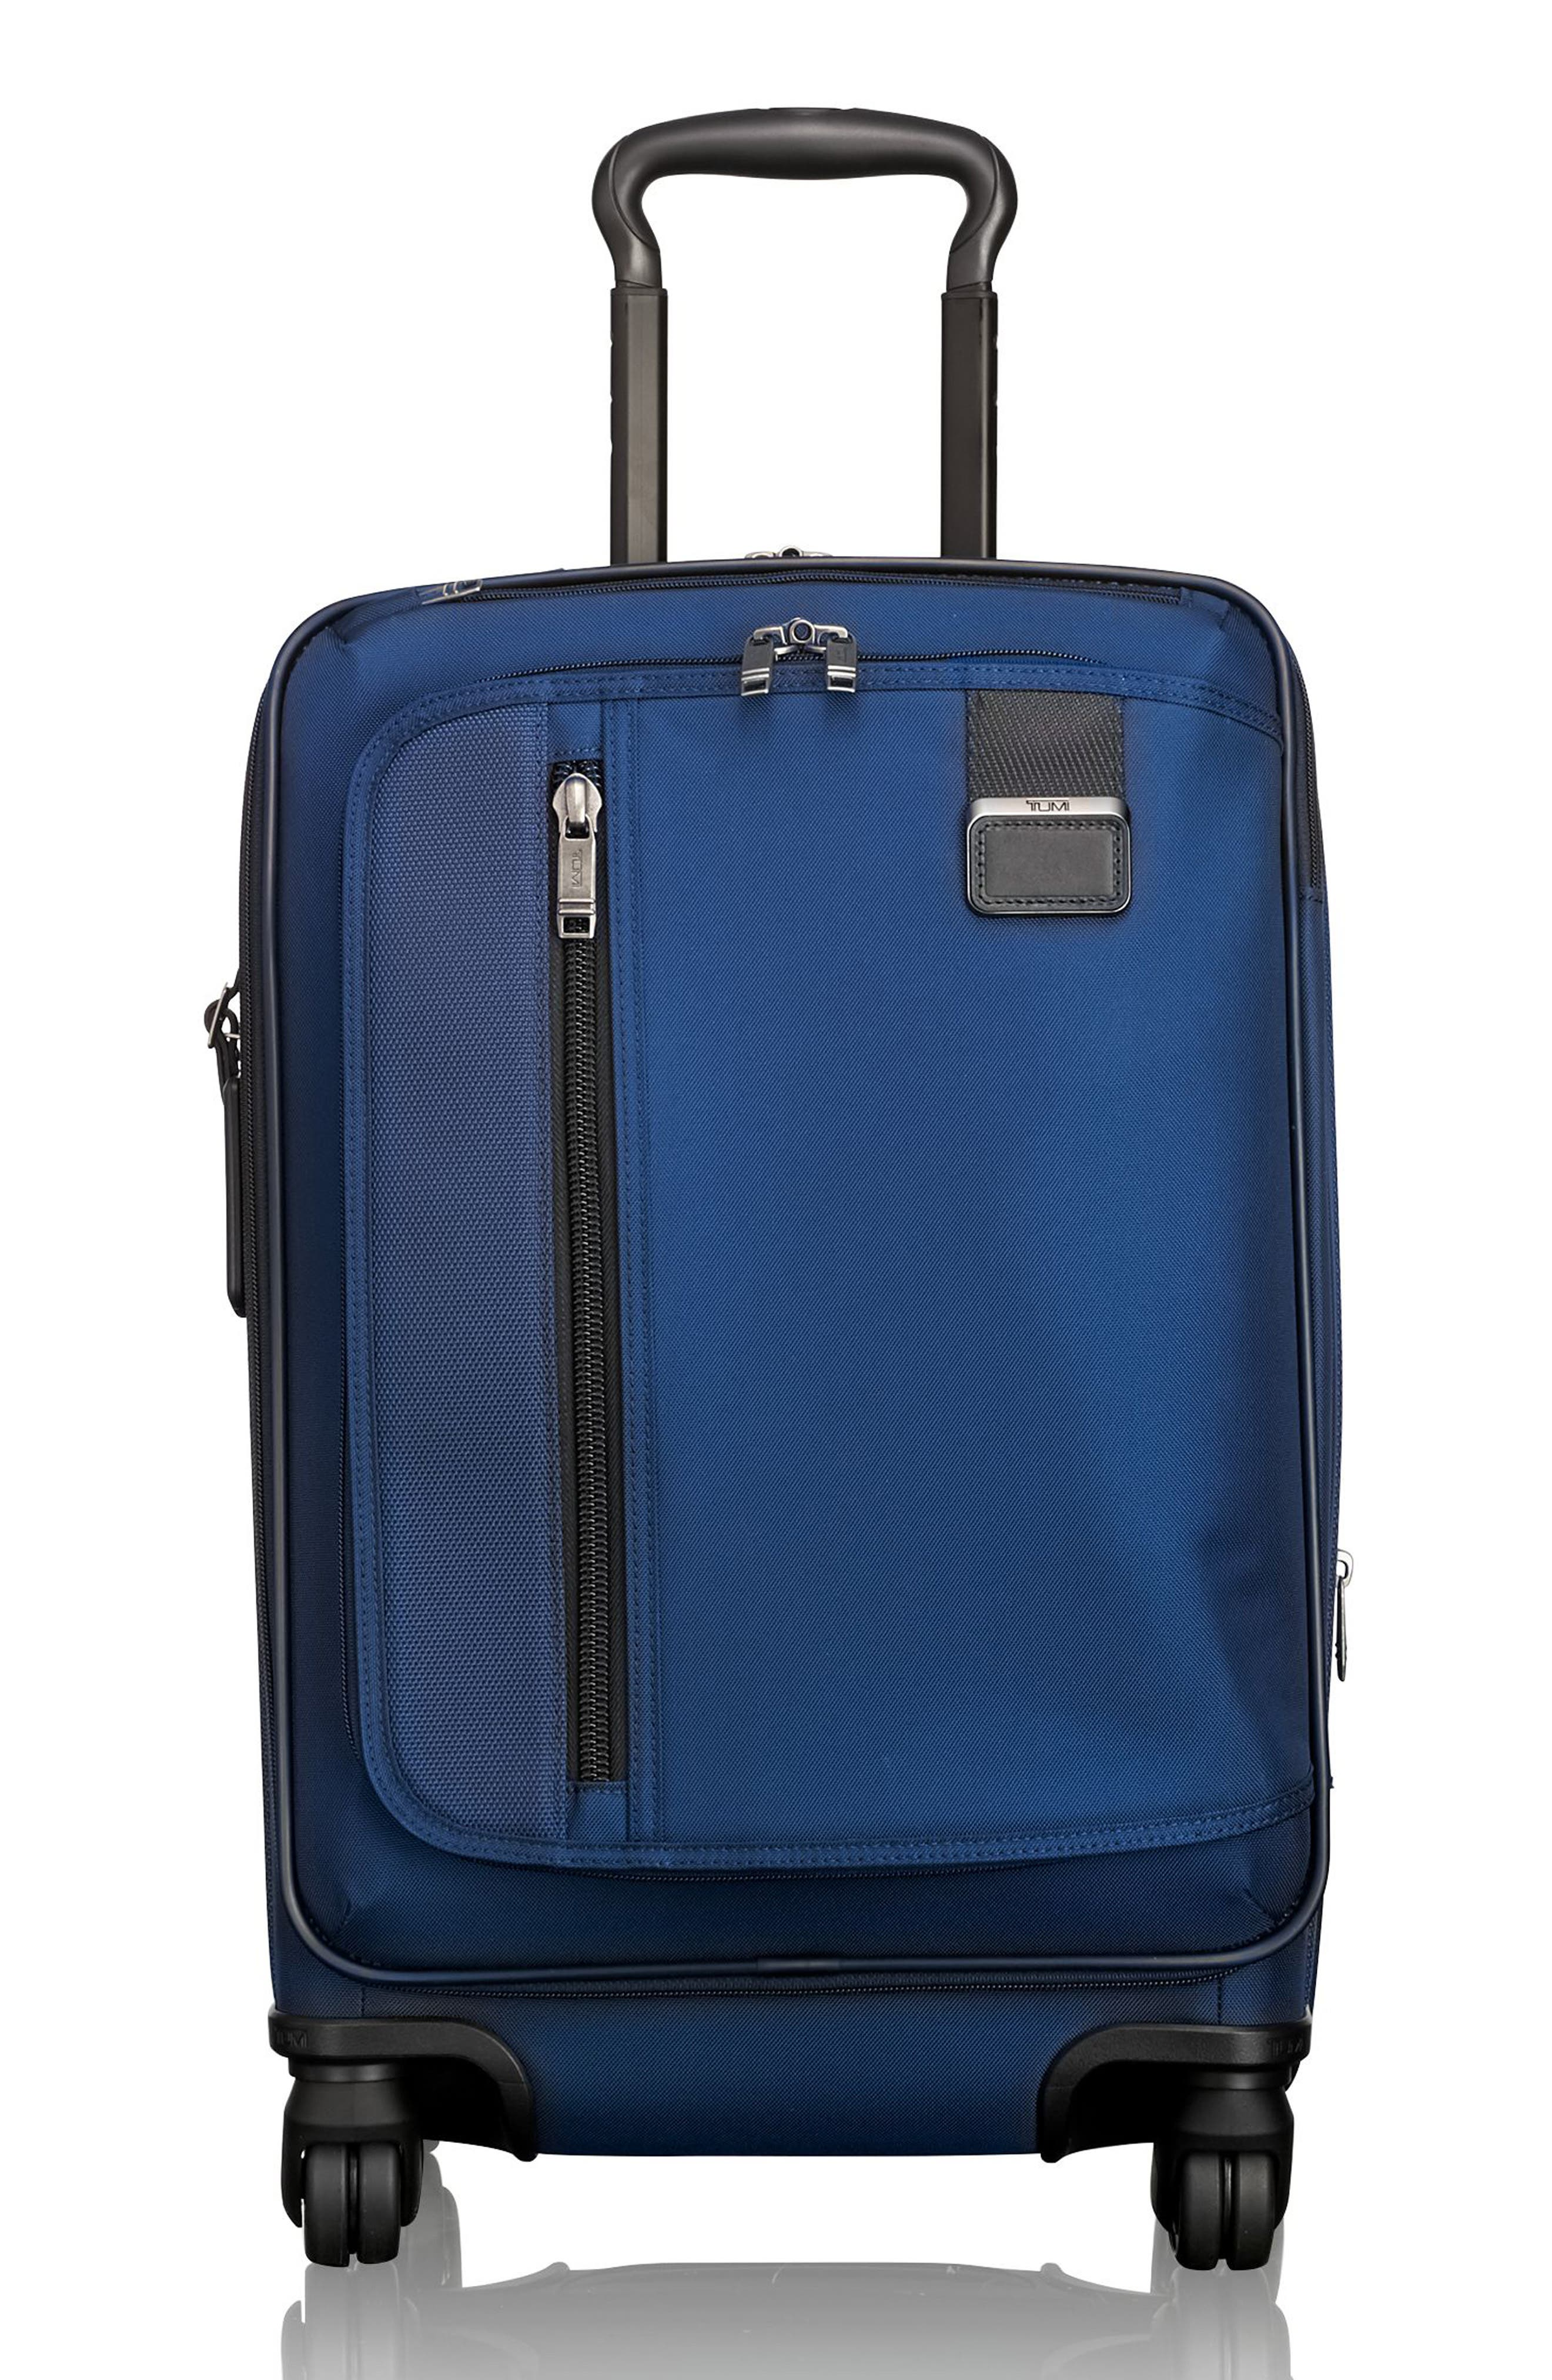 Merge - 22-Inch International Expandable Rolling Carry-On,                             Main thumbnail 1, color,                             OCEAN BLUE